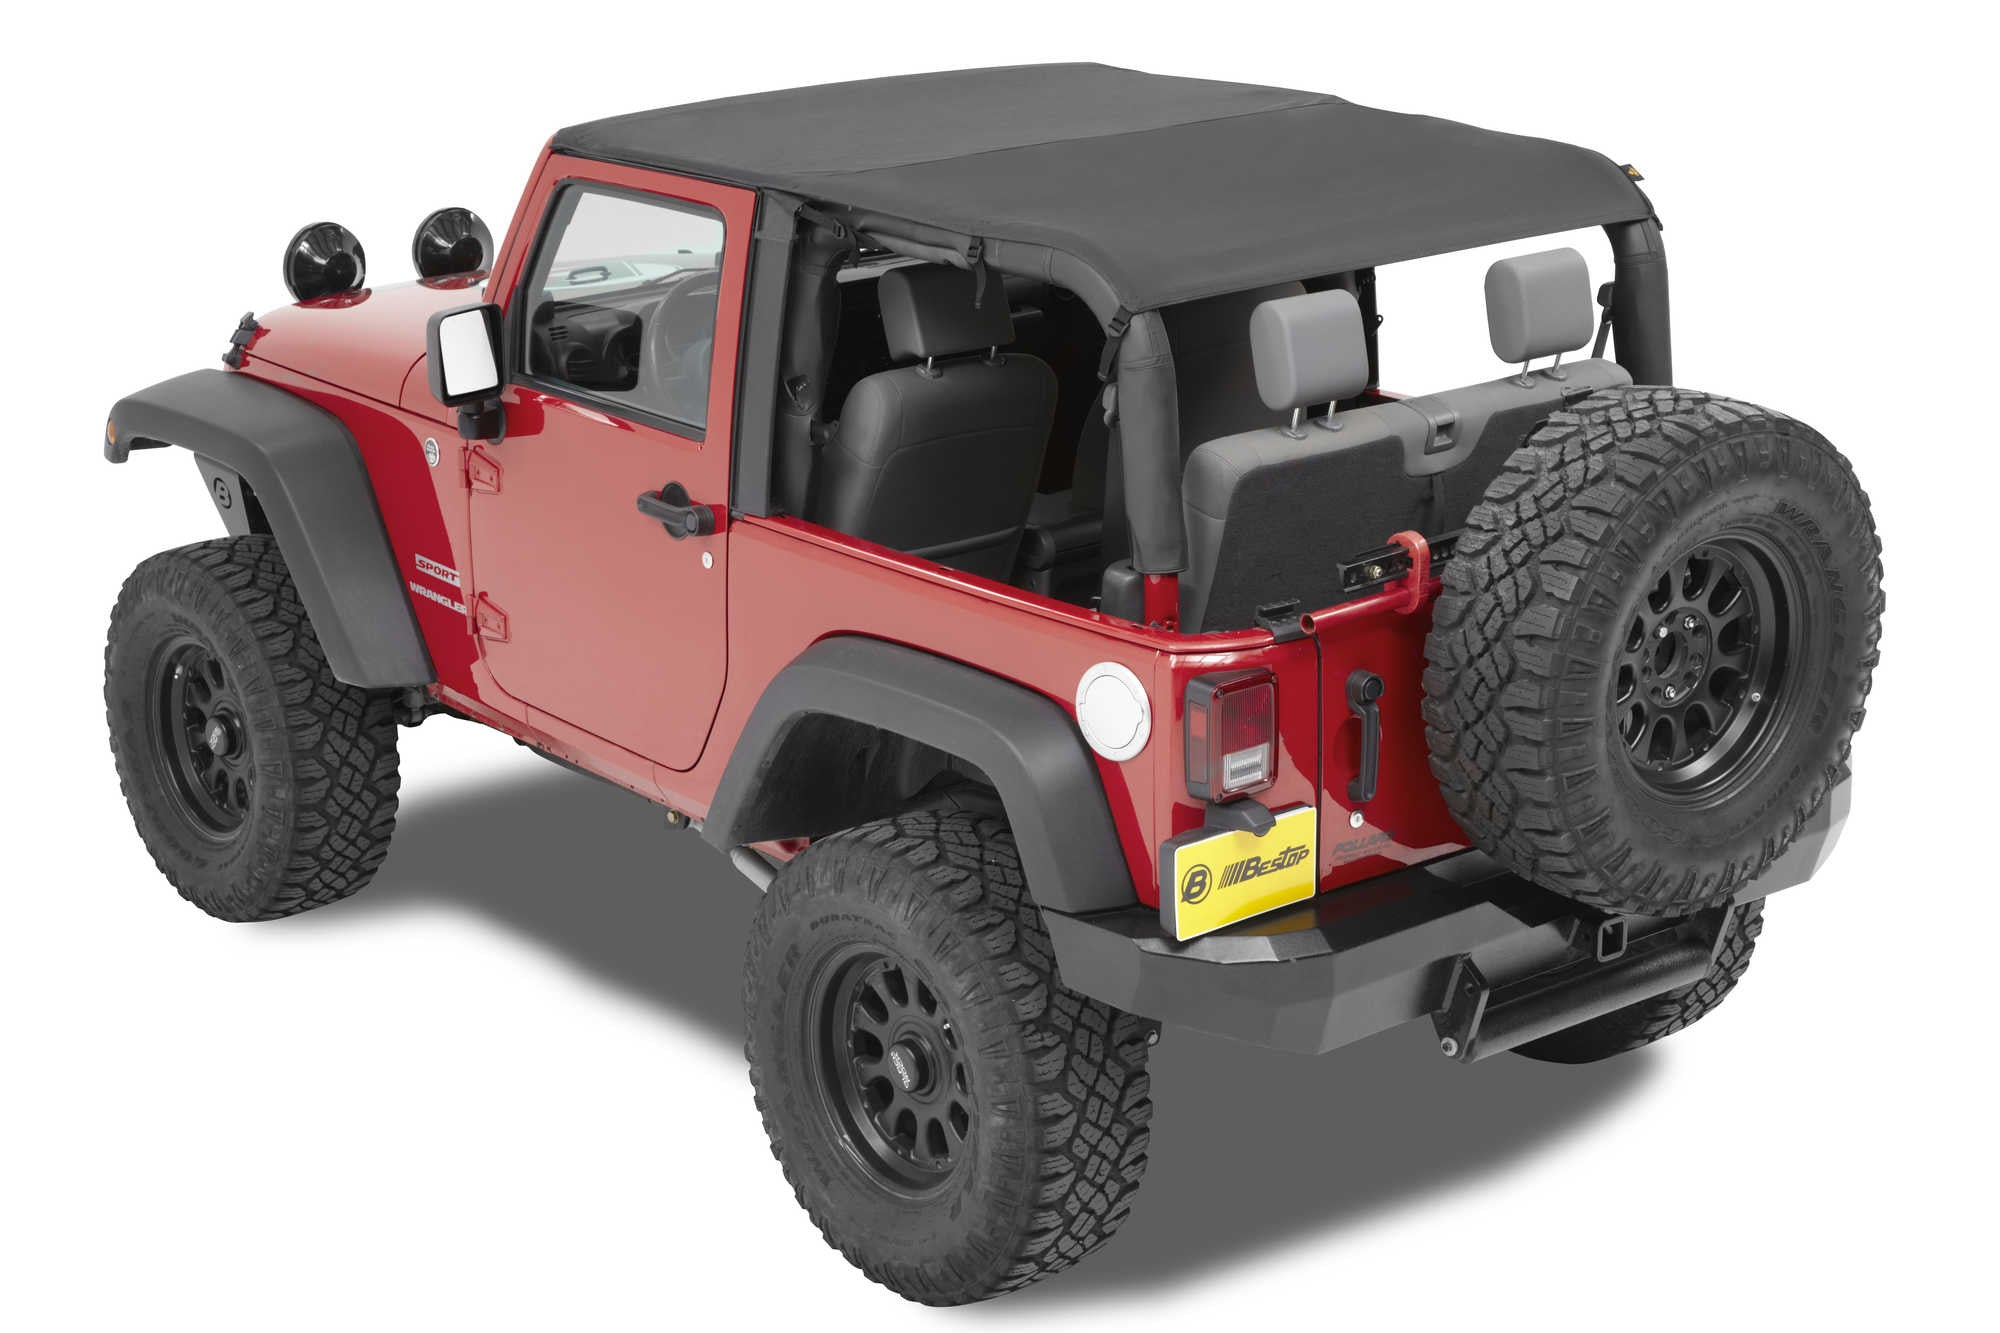 Superb Bestop Cable Style Safari Bikini Top For 10 16 Jeep Wrangler JK 2 Door    Black Dog Offroad